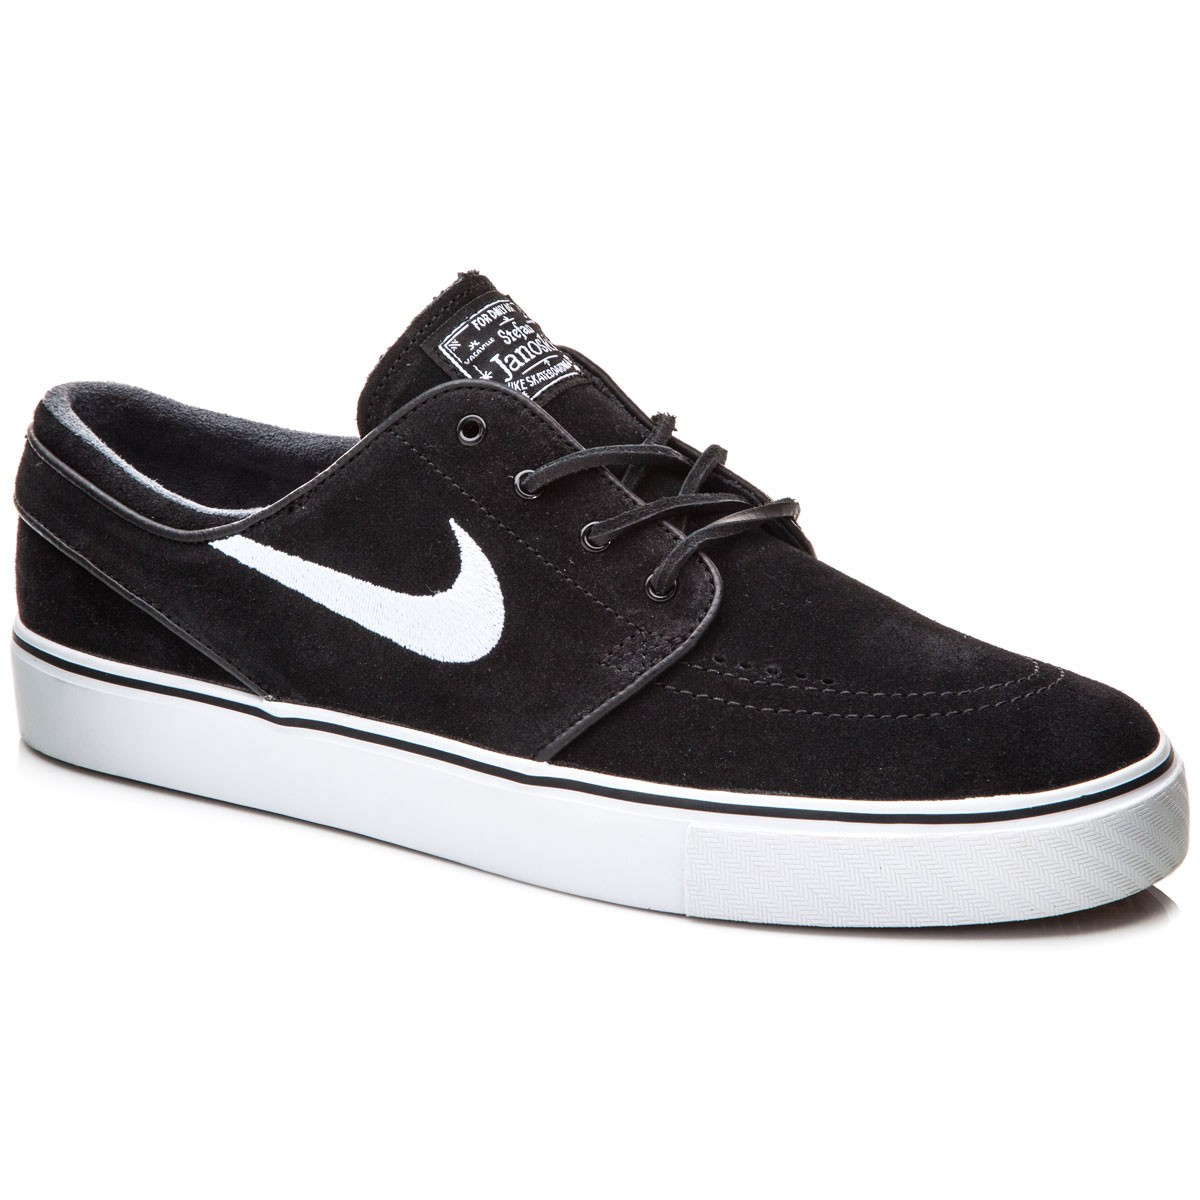 The Nike SB Air Zoom Stefan Janoski Leather Shoes are just as great as the name implies, they're leather Janoskis. The streamlined leather upper provides low-profile durability, while the carefully placed perforations on the vamp provide breathability.